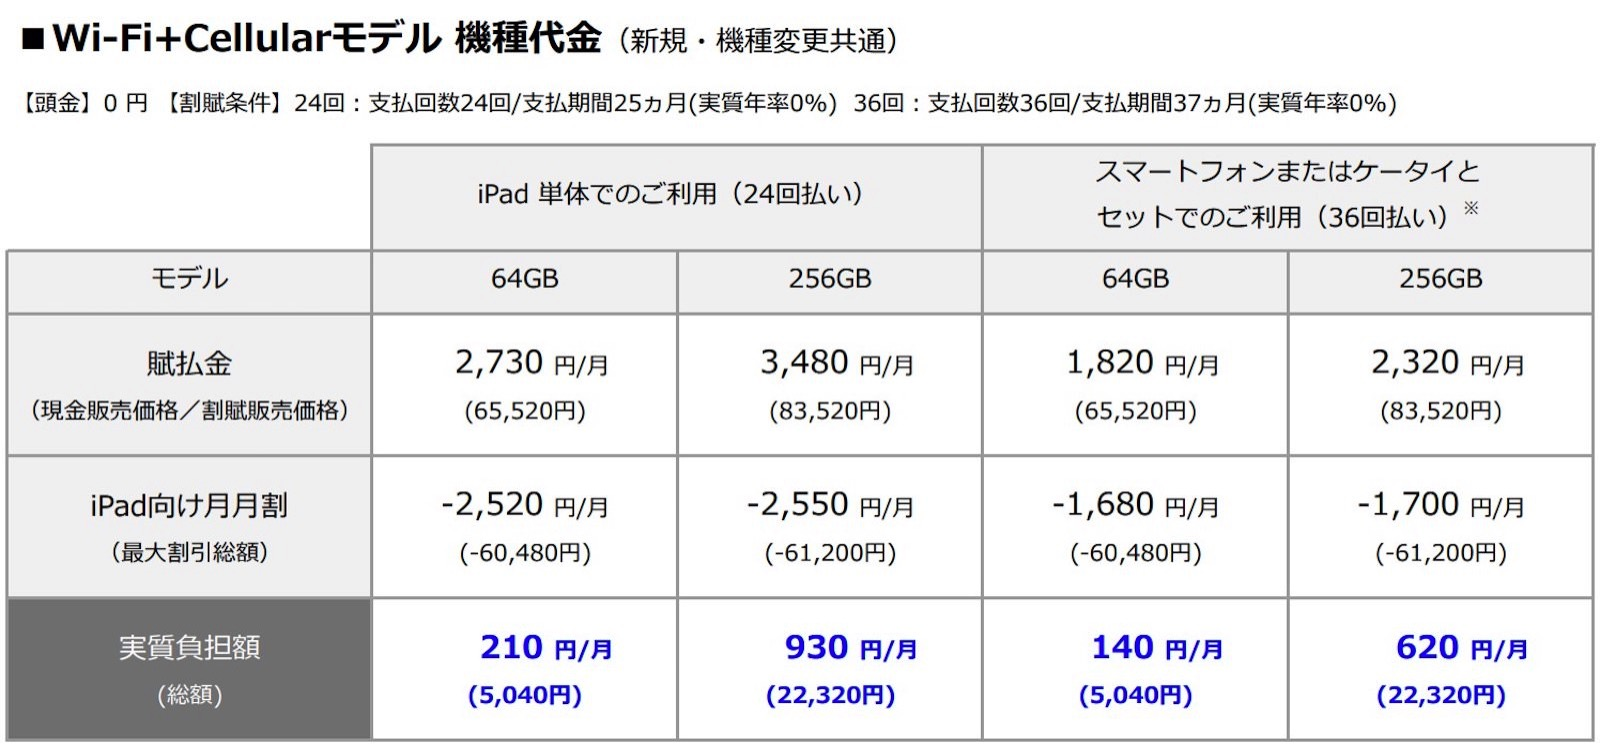 Softbank ipad mini pricing